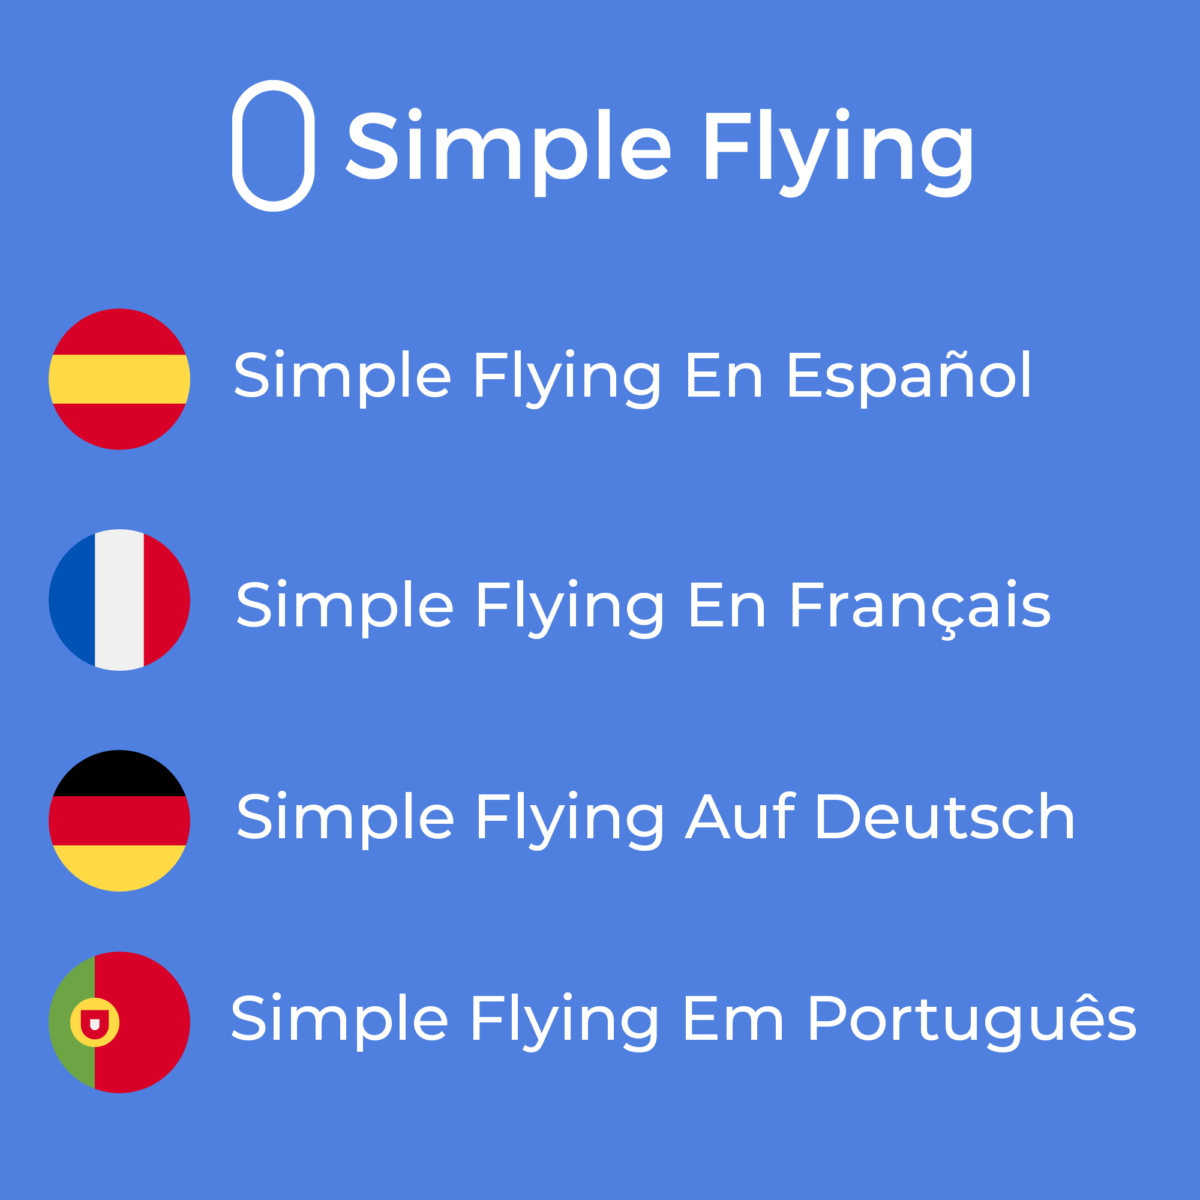 Simple Flying Launches In 4 New Languages